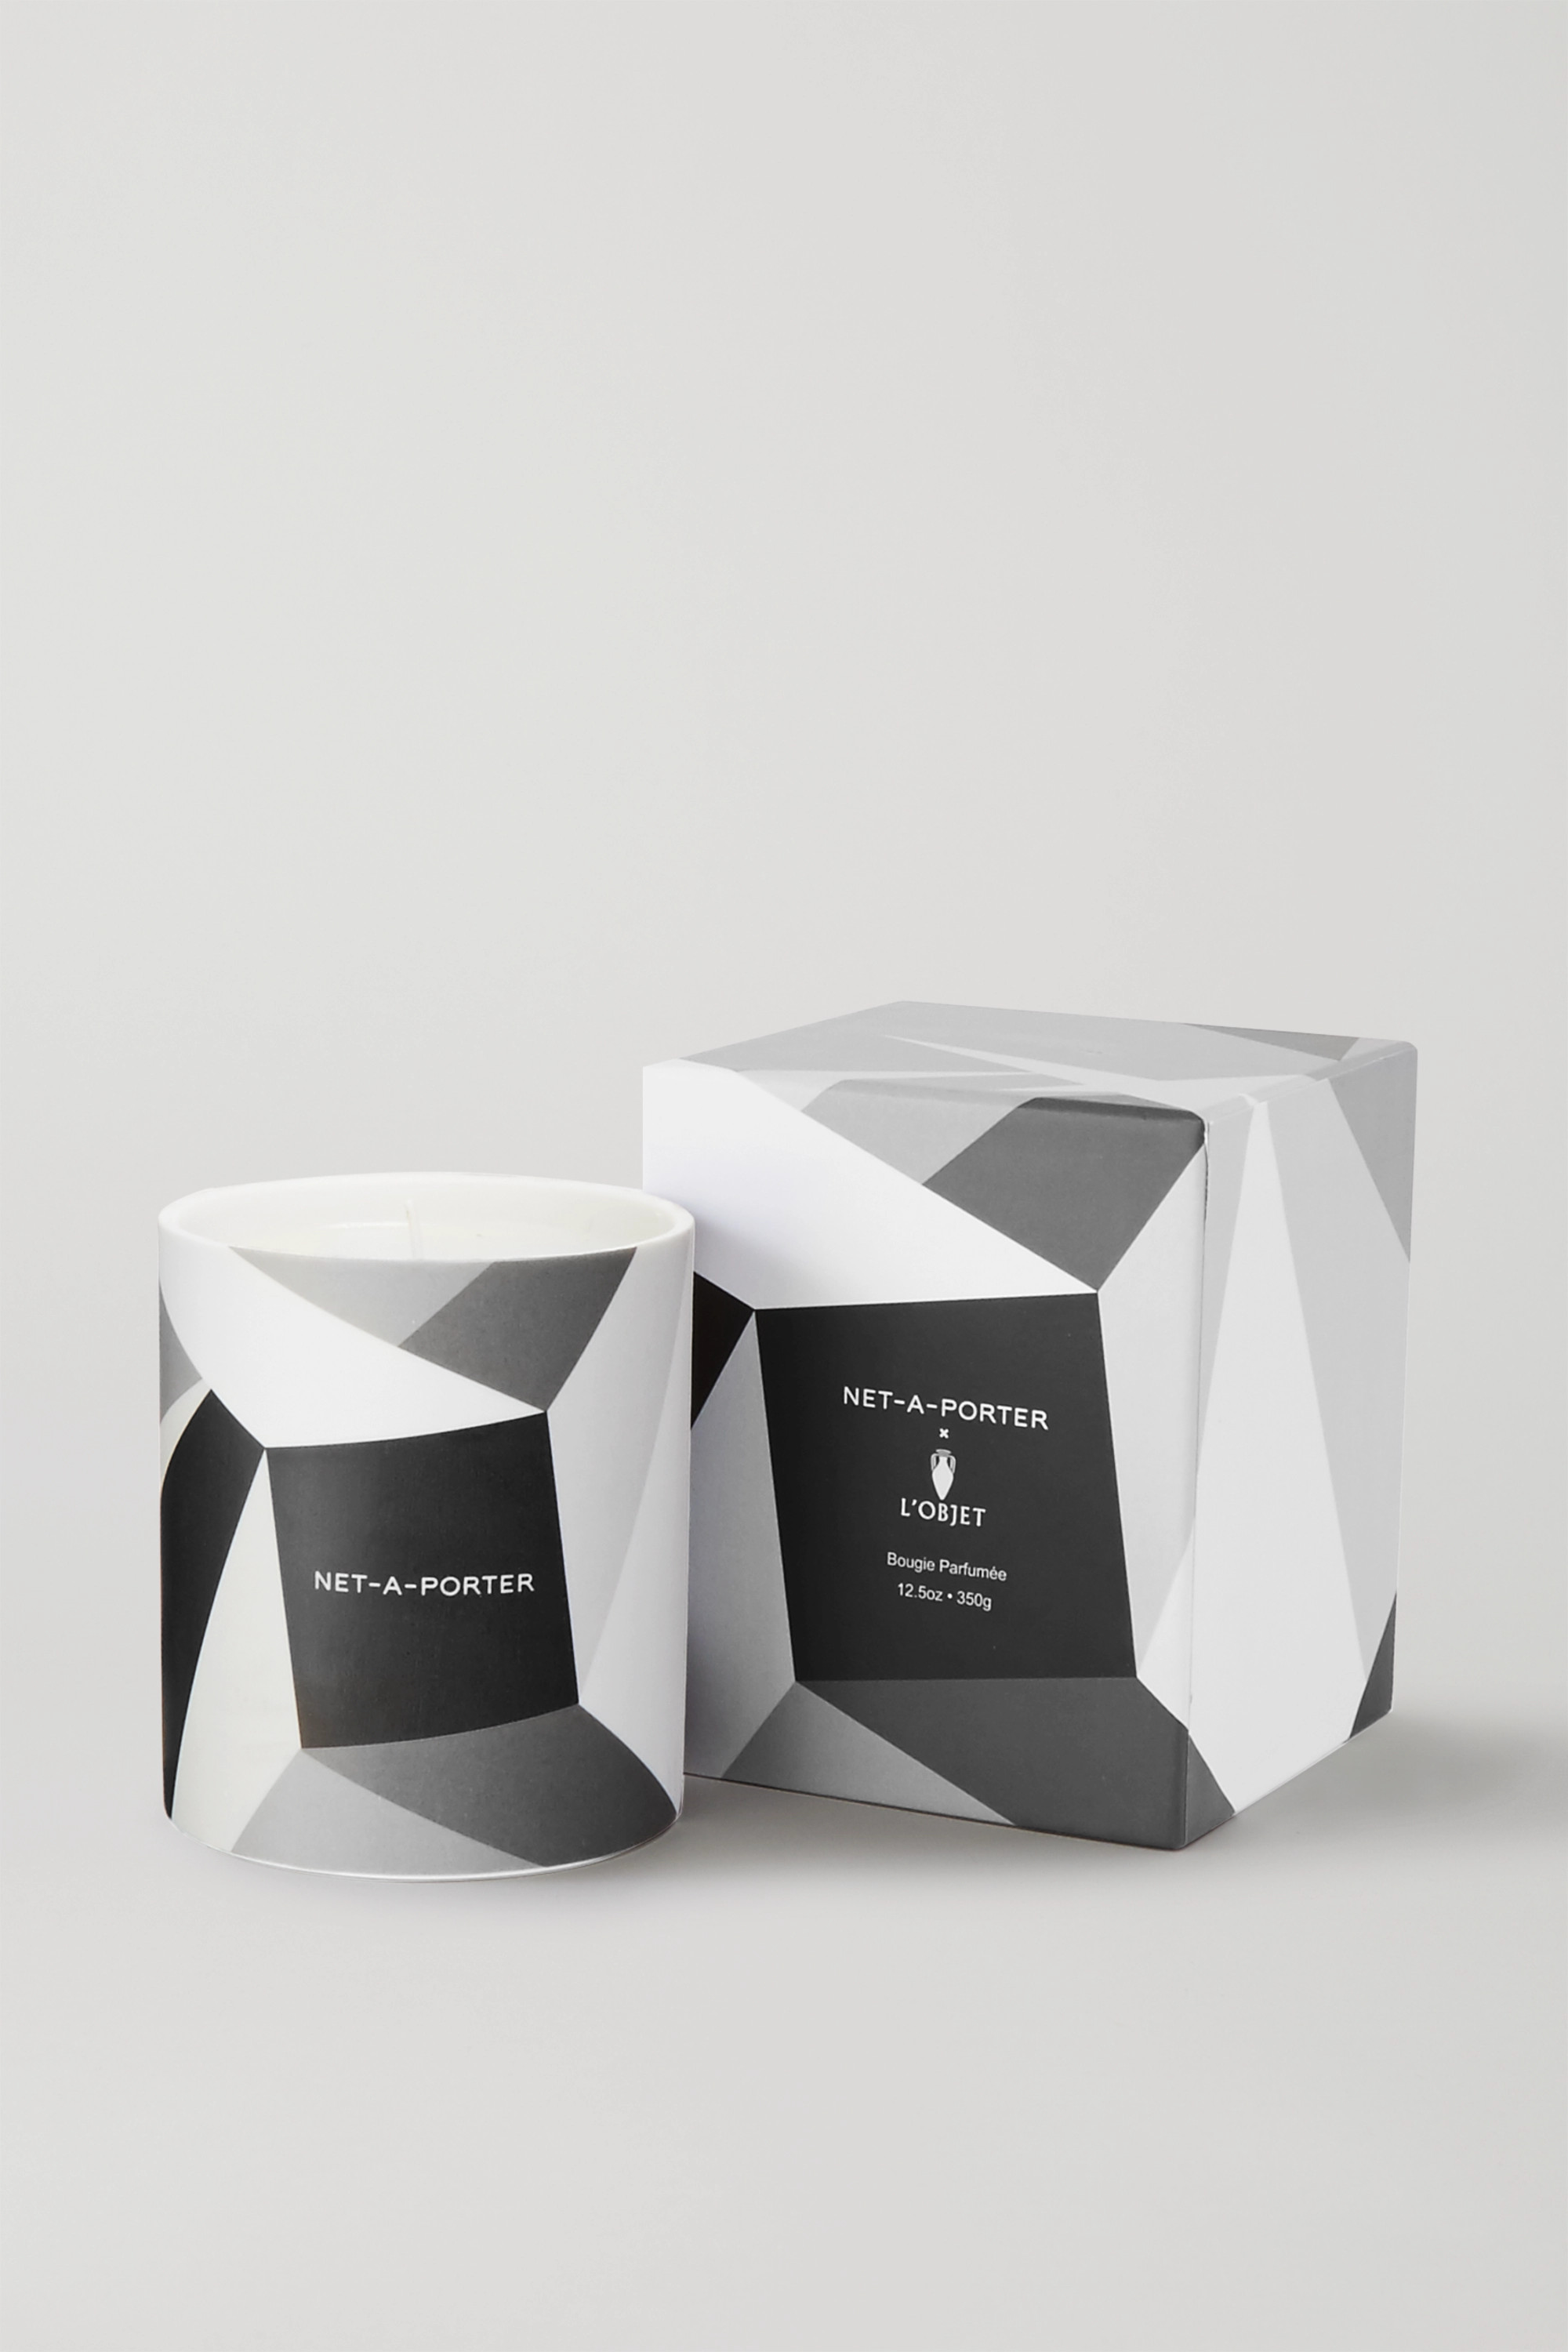 L'Objet + NET-A-PORTER 20th Anniversary Candle - Green Vetiver, 350g